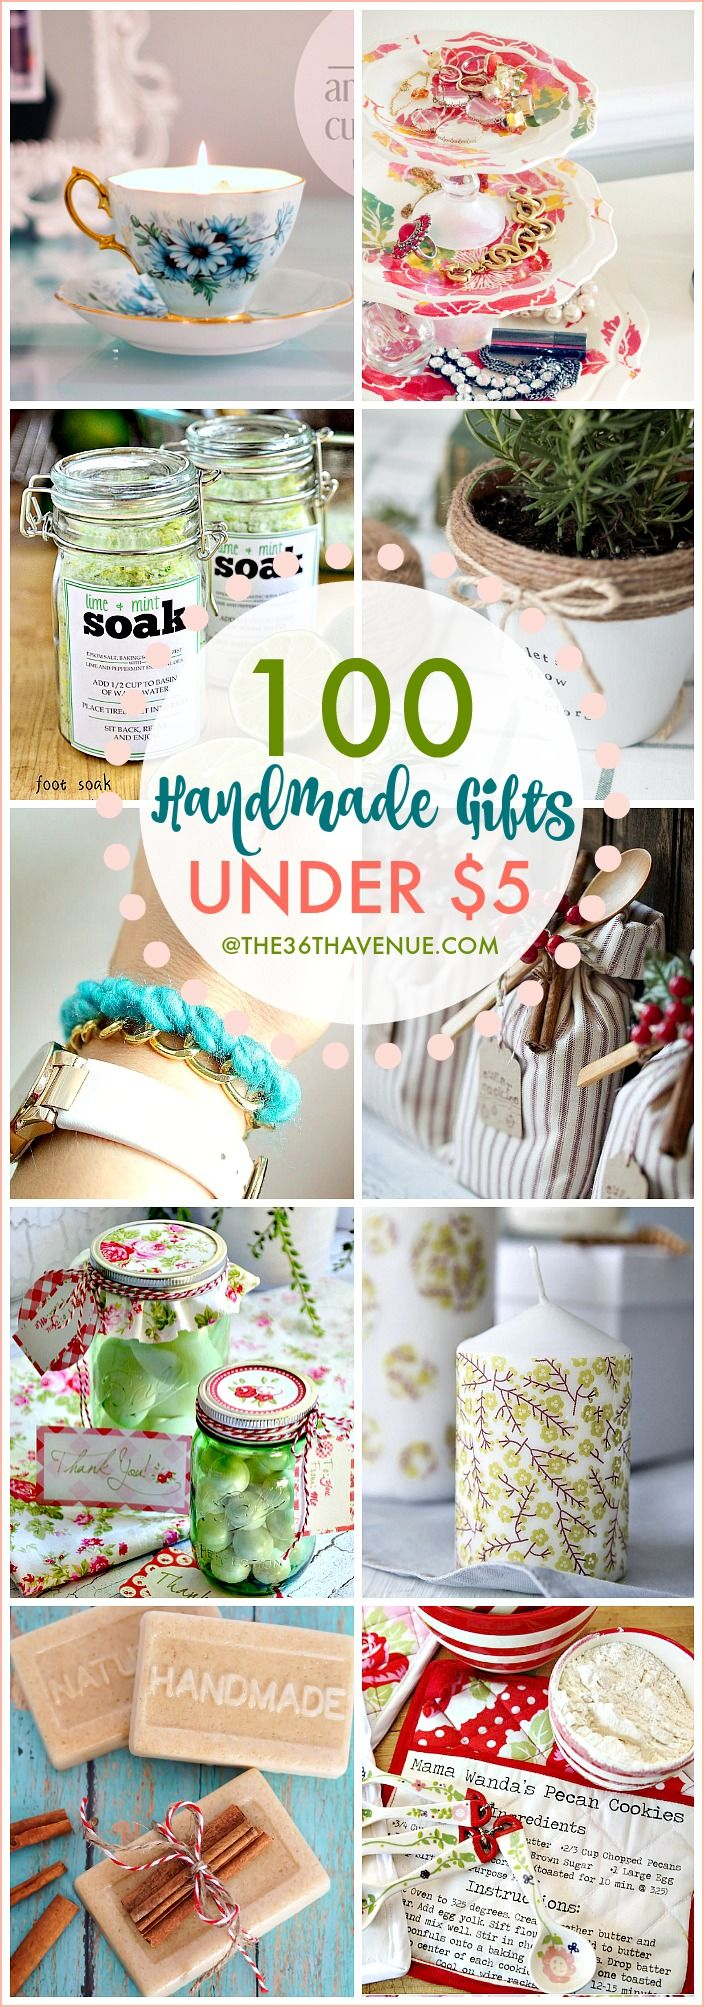 68 best DIY images on Pinterest | For the home, Gift ideas and Bricolage